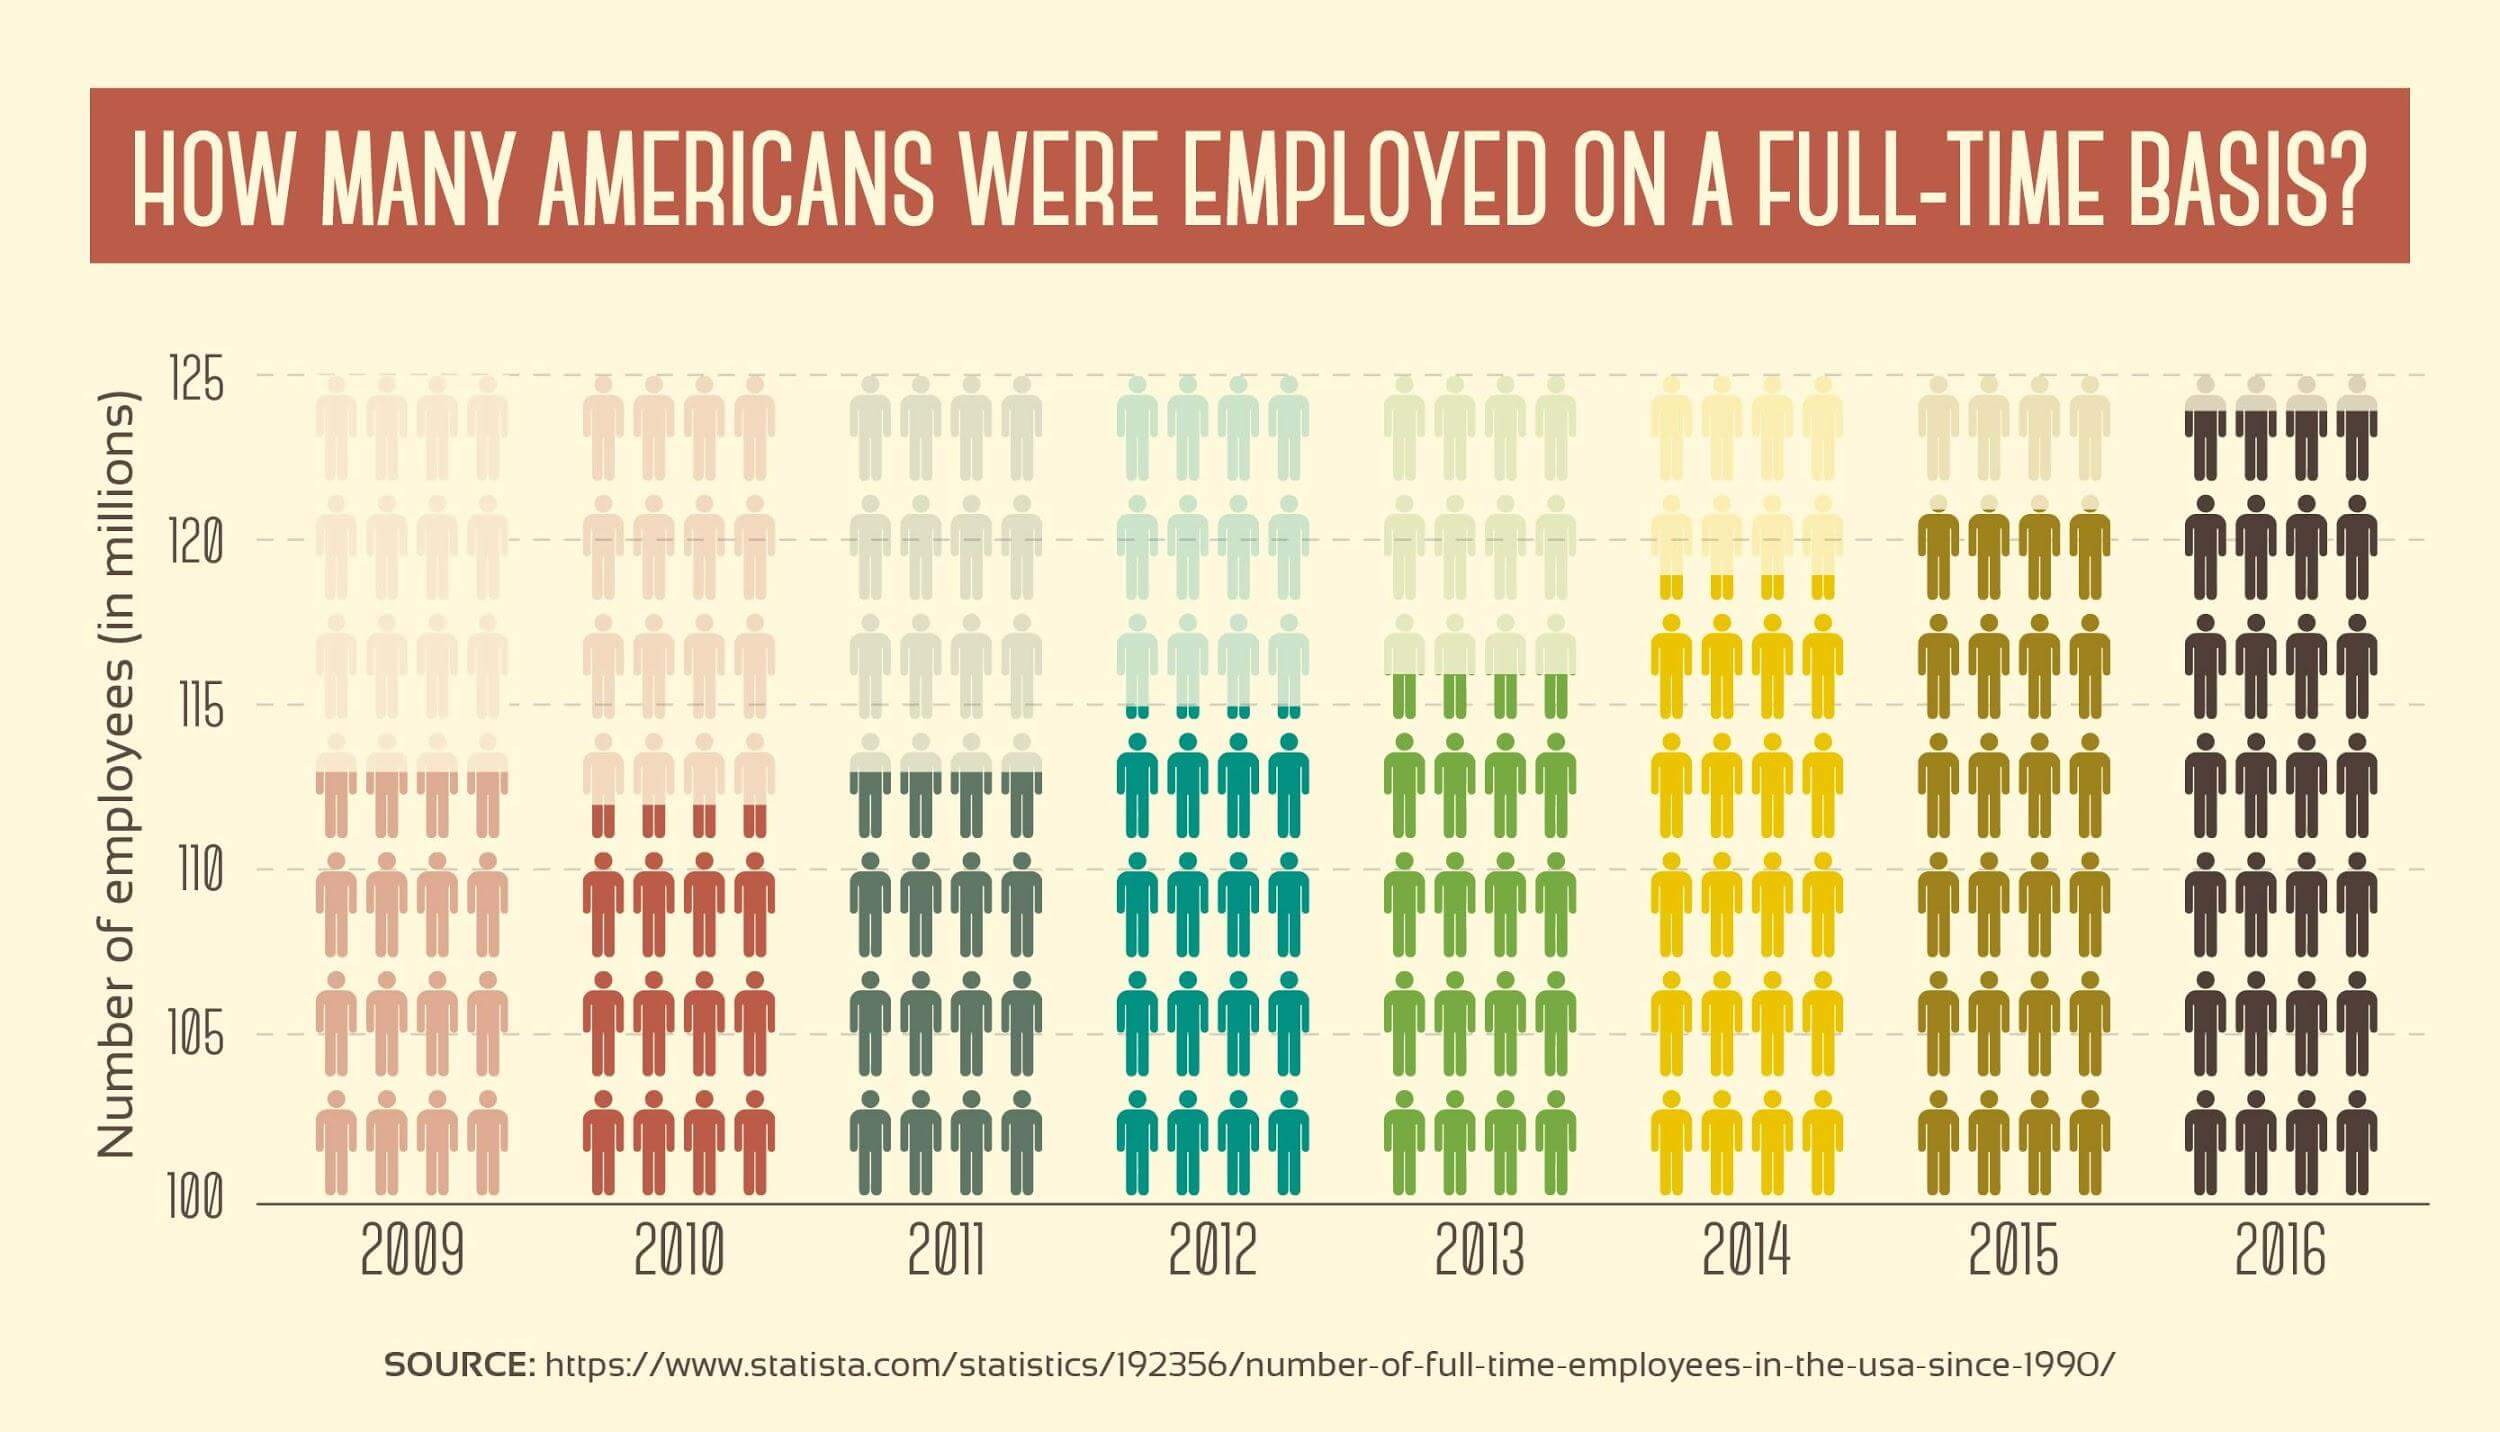 How Many Americans Were Employed on a Full-Time Basis?